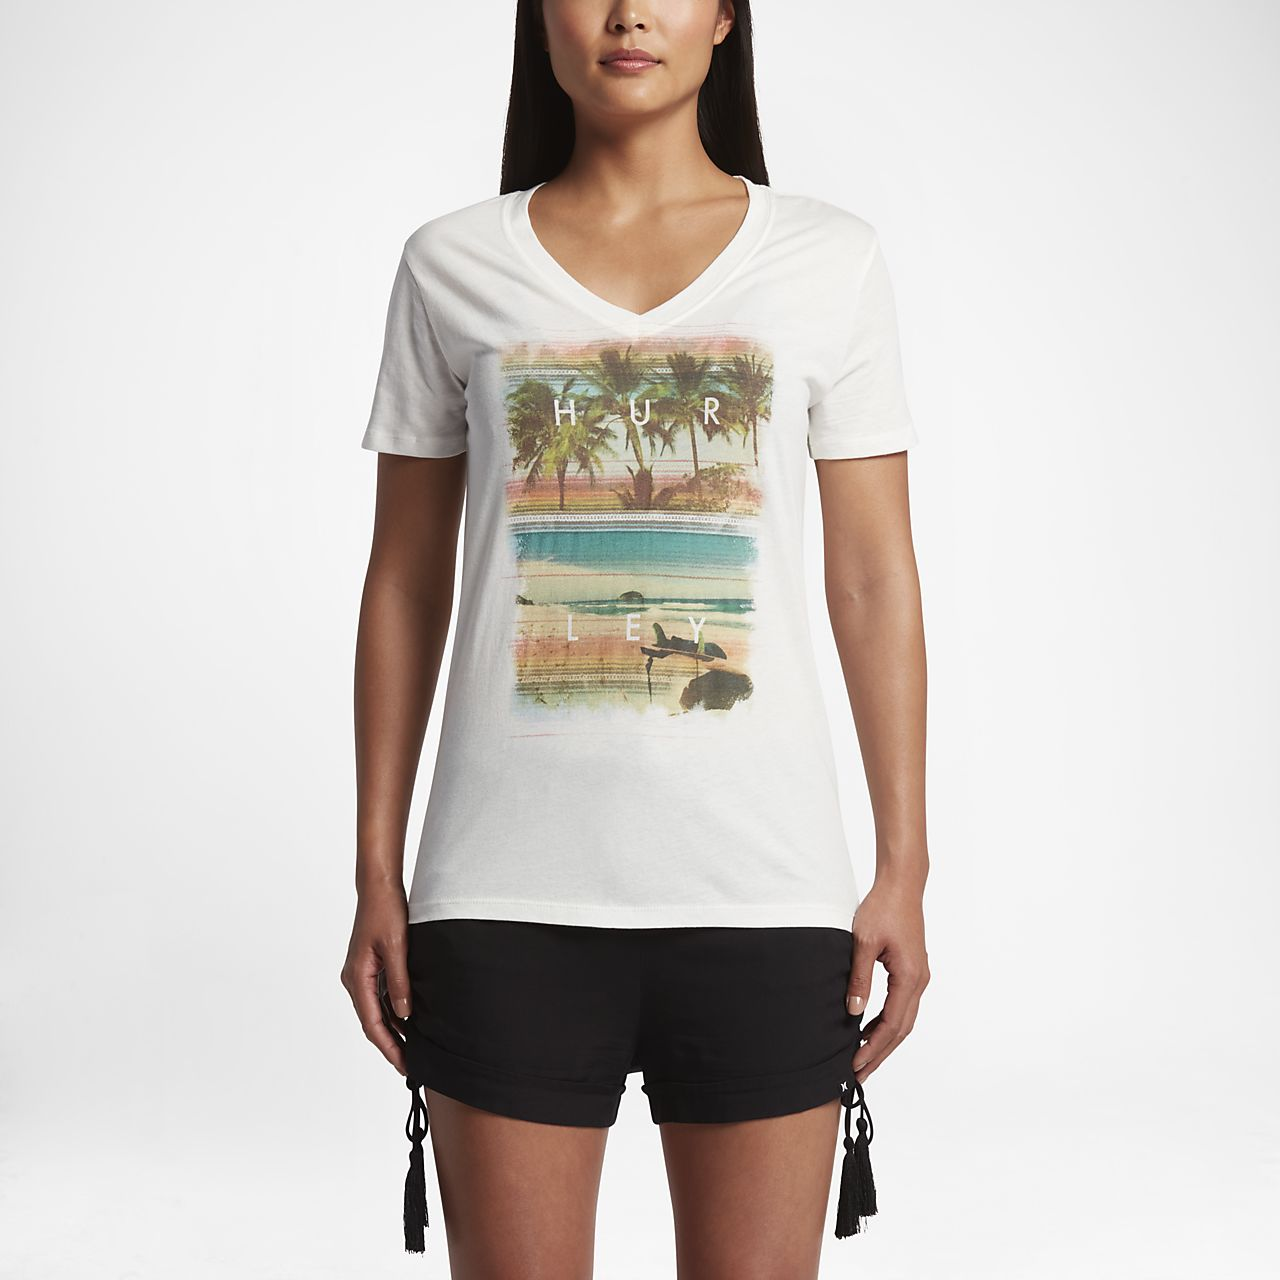 Hurley Lakey Peterson Perfect V Women's T-Shirts Sail